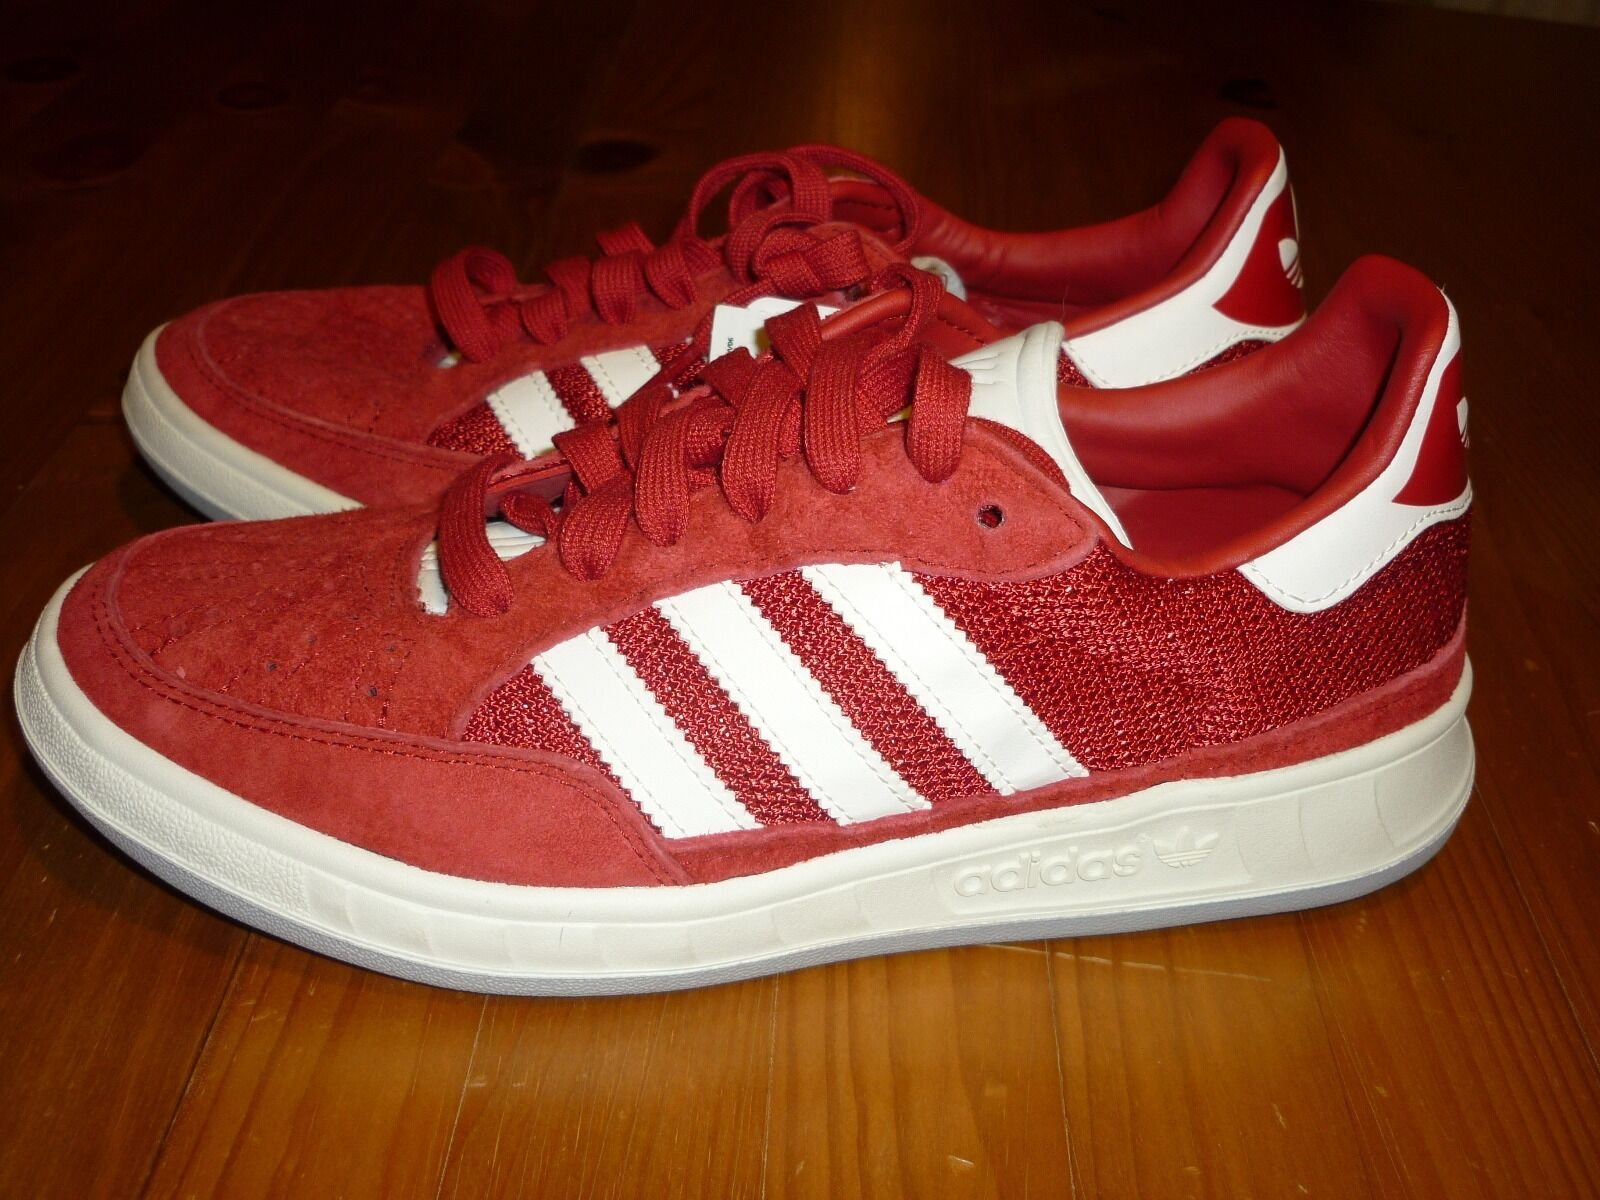 ADIDAS SUISSE TRAINERS 2/3 Talla 4 EUR 36 2/3 TRAINERS BNWT 6ba80d